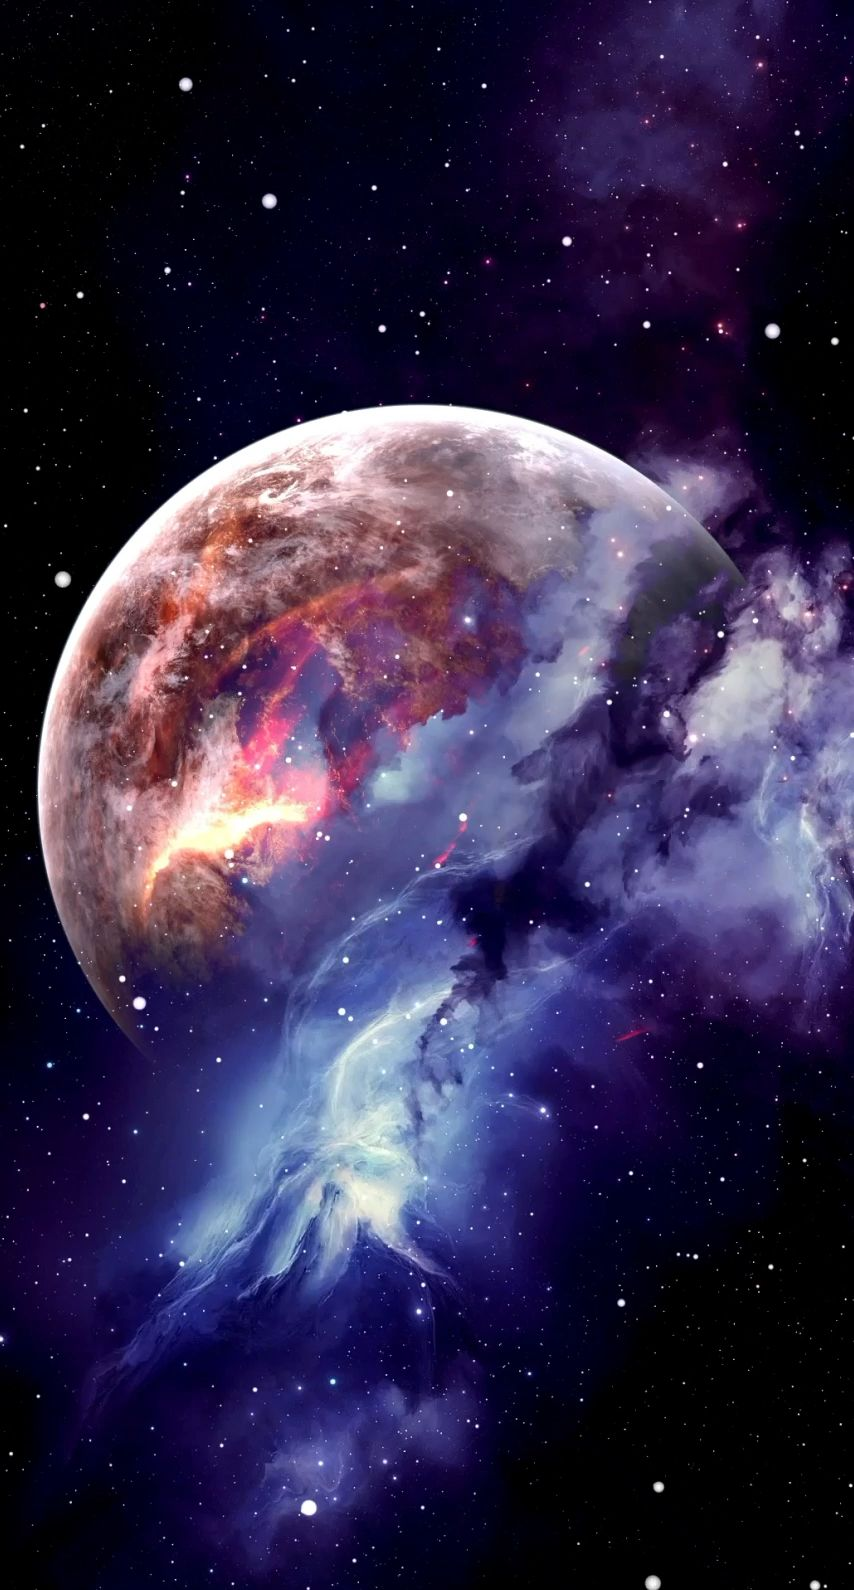 Awesome Space Wallpaper Video Wallpaper Space Space Iphone Wallpaper Planets Wallpaper